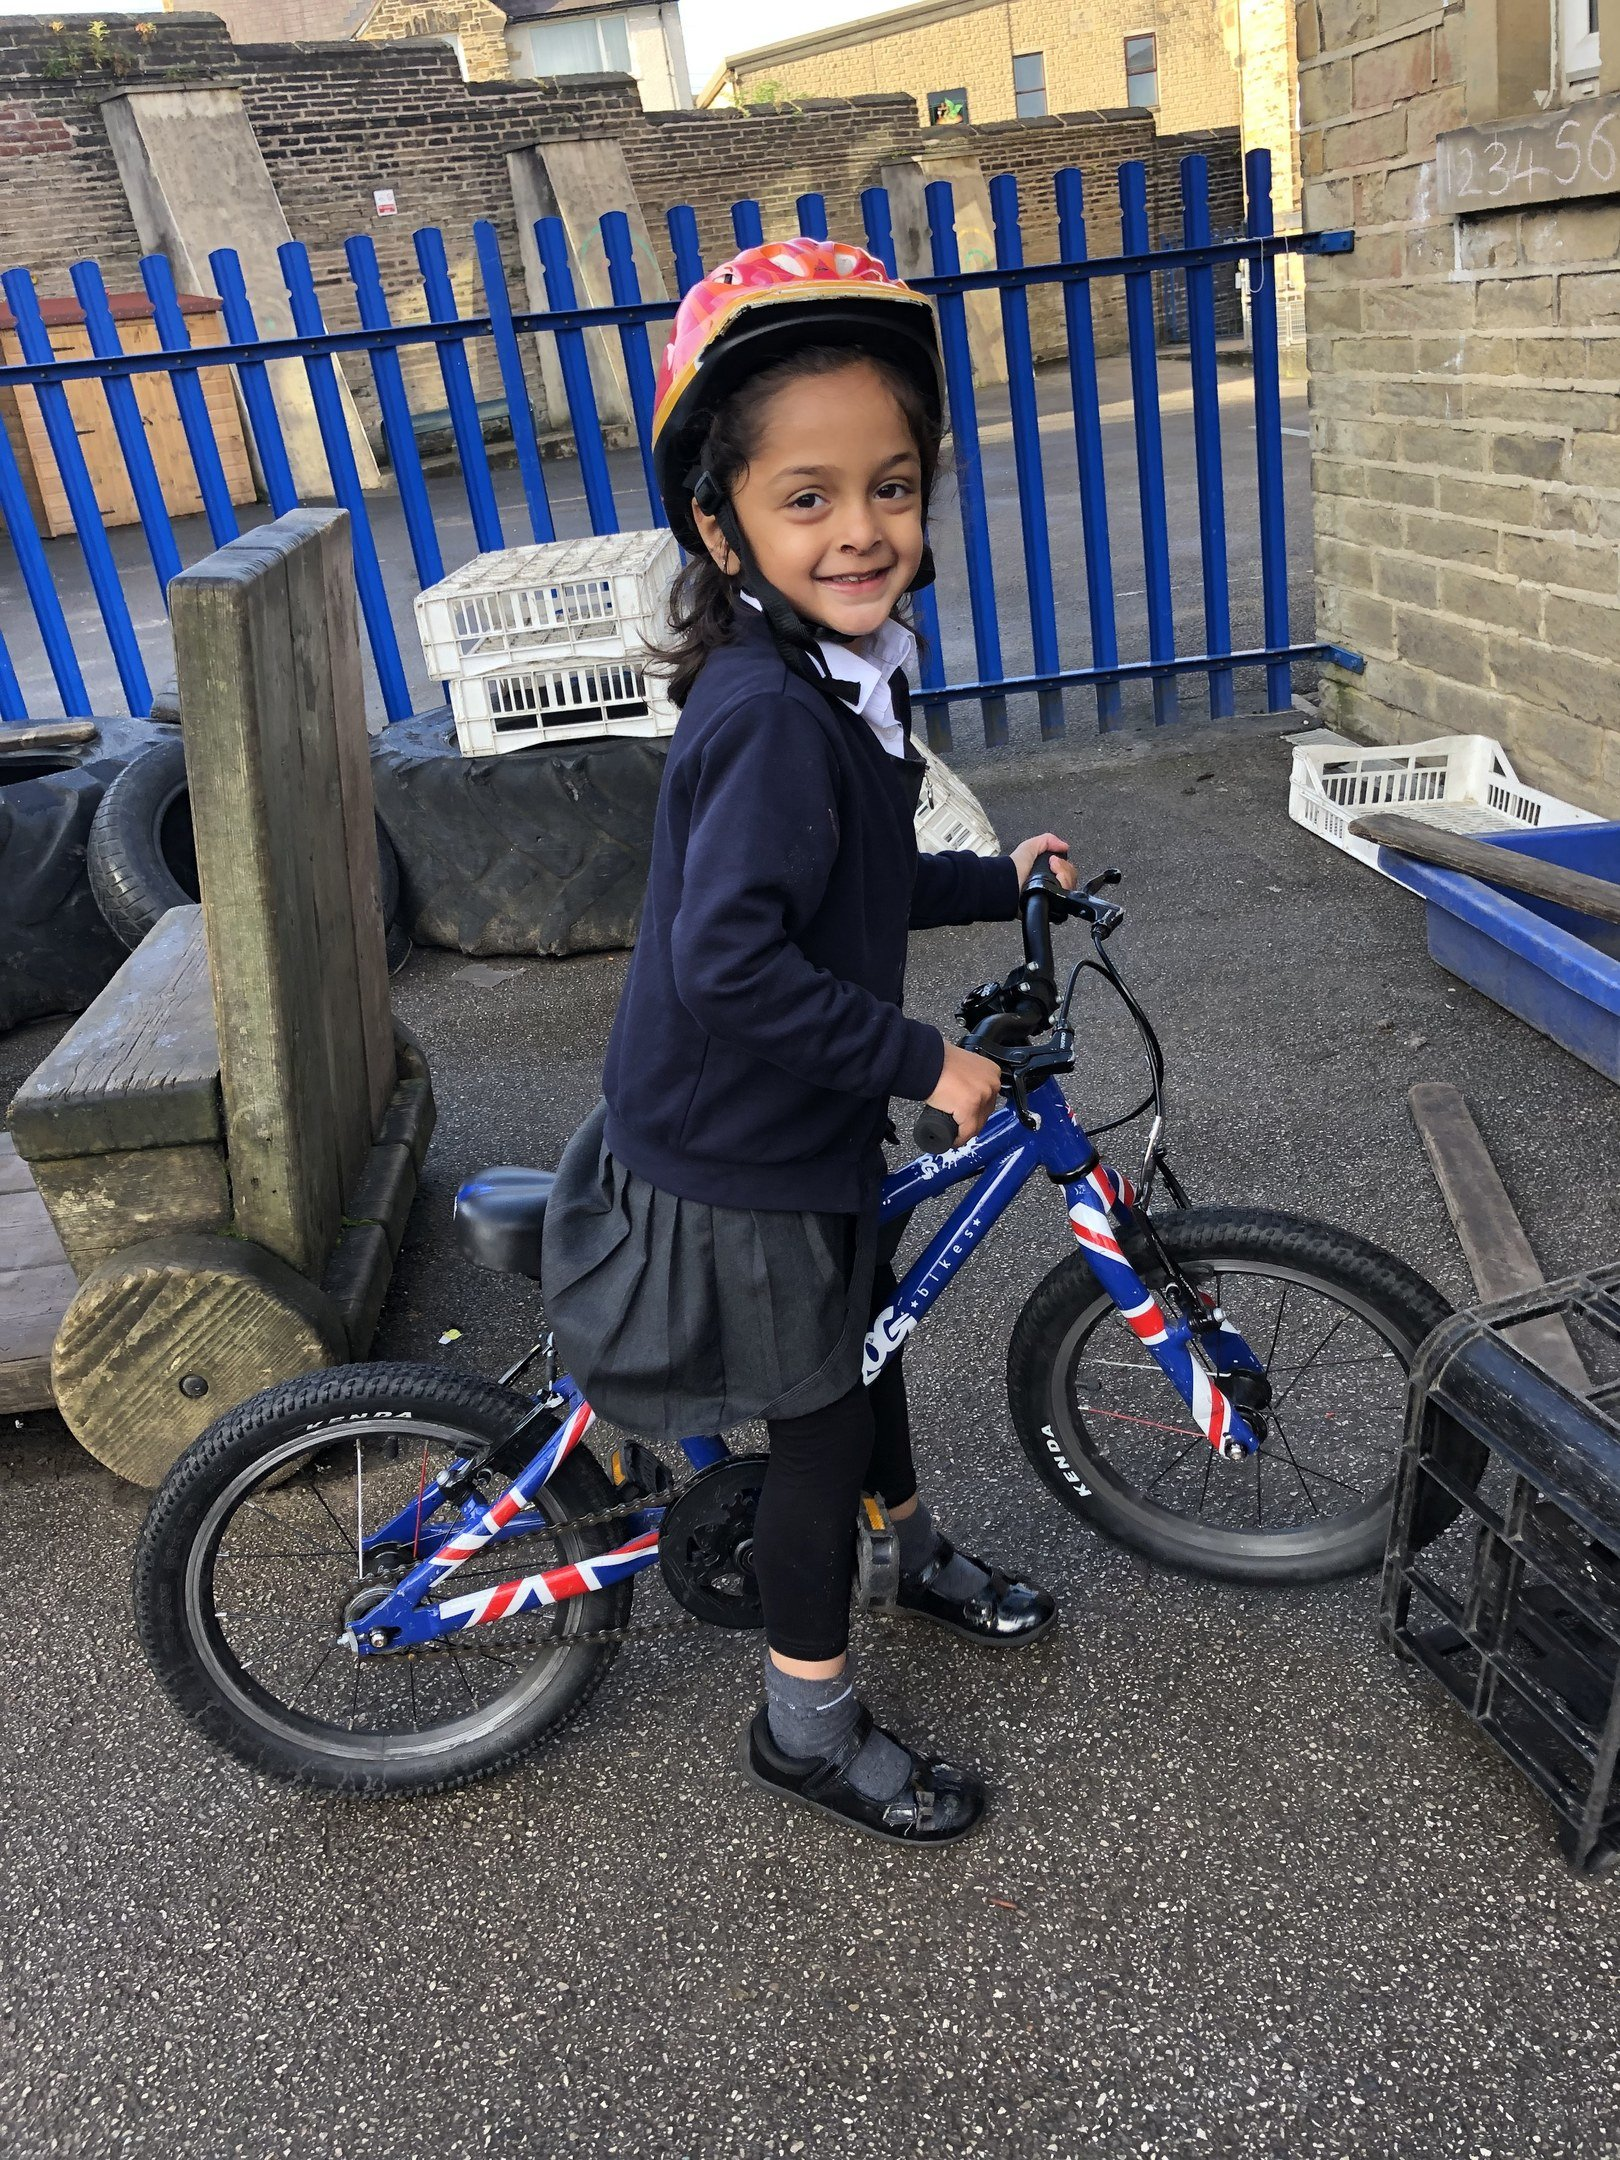 Child enjoying the Cycling Club